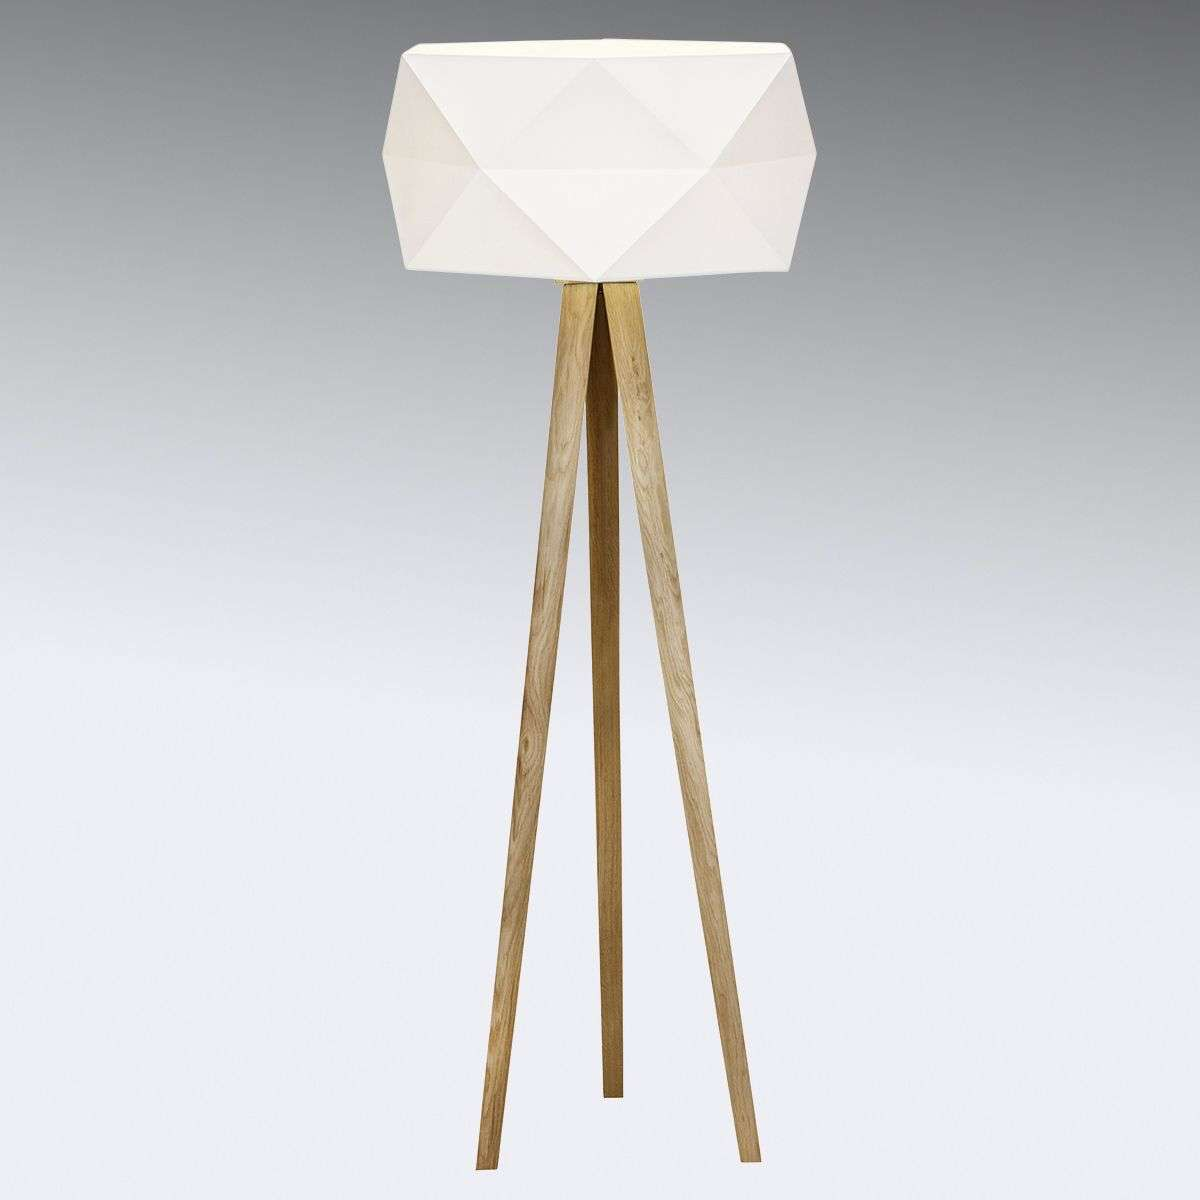 Tripod Floor Lamp Uk Part - 41: Tripod Floor Lamp Polygon With Fabric Lampshade-1509205-31